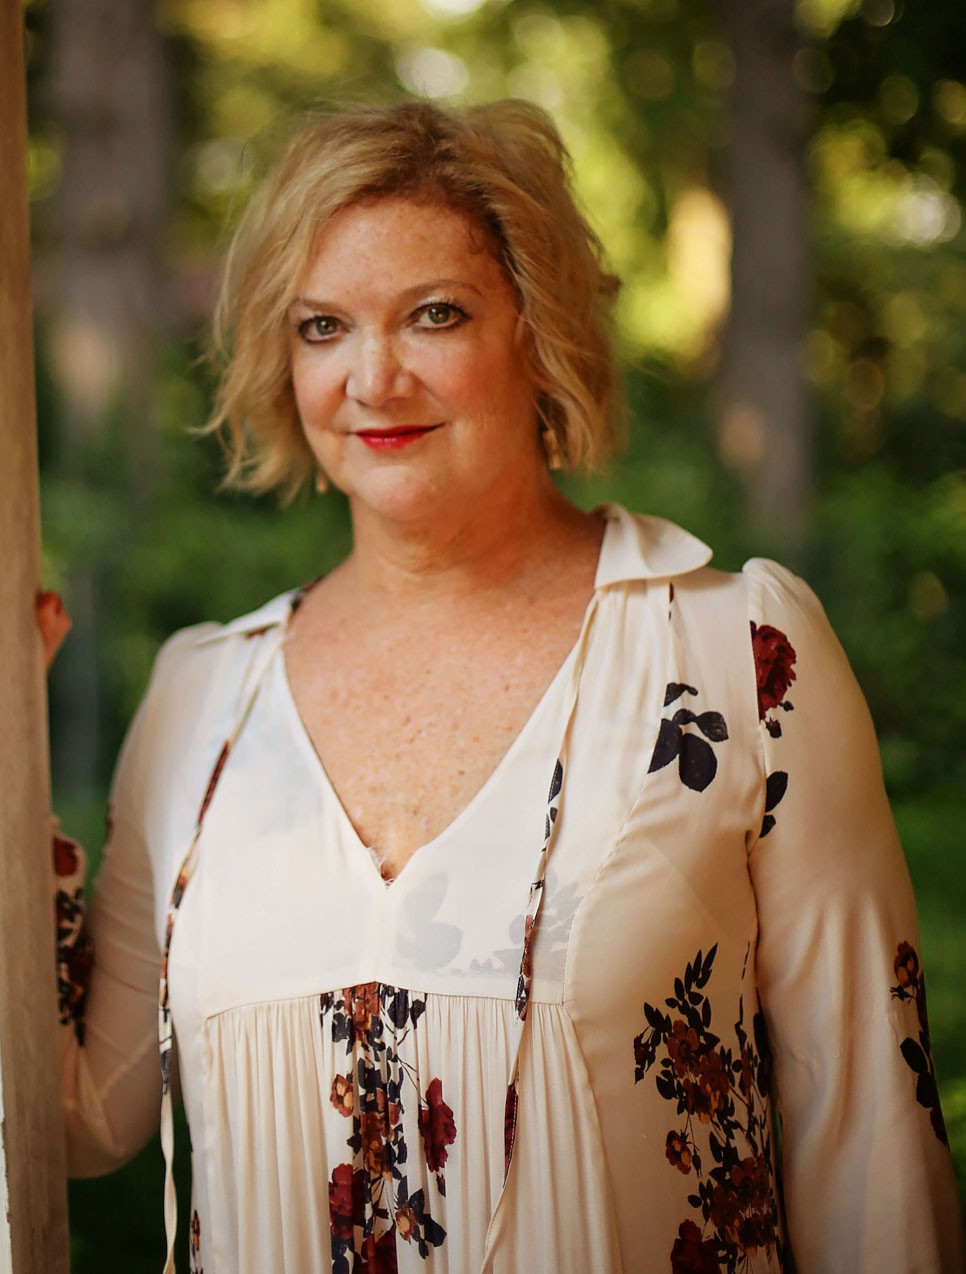 """ERIN CHANDLER, the author of the recently published """"June Bug Versus Hurricane"""" is the granddaughter of A.B. """"Happy"""" Chandler. The actress, writer and producer said she's glad to be back in her hometown. (Photo by Erica Chambers)"""